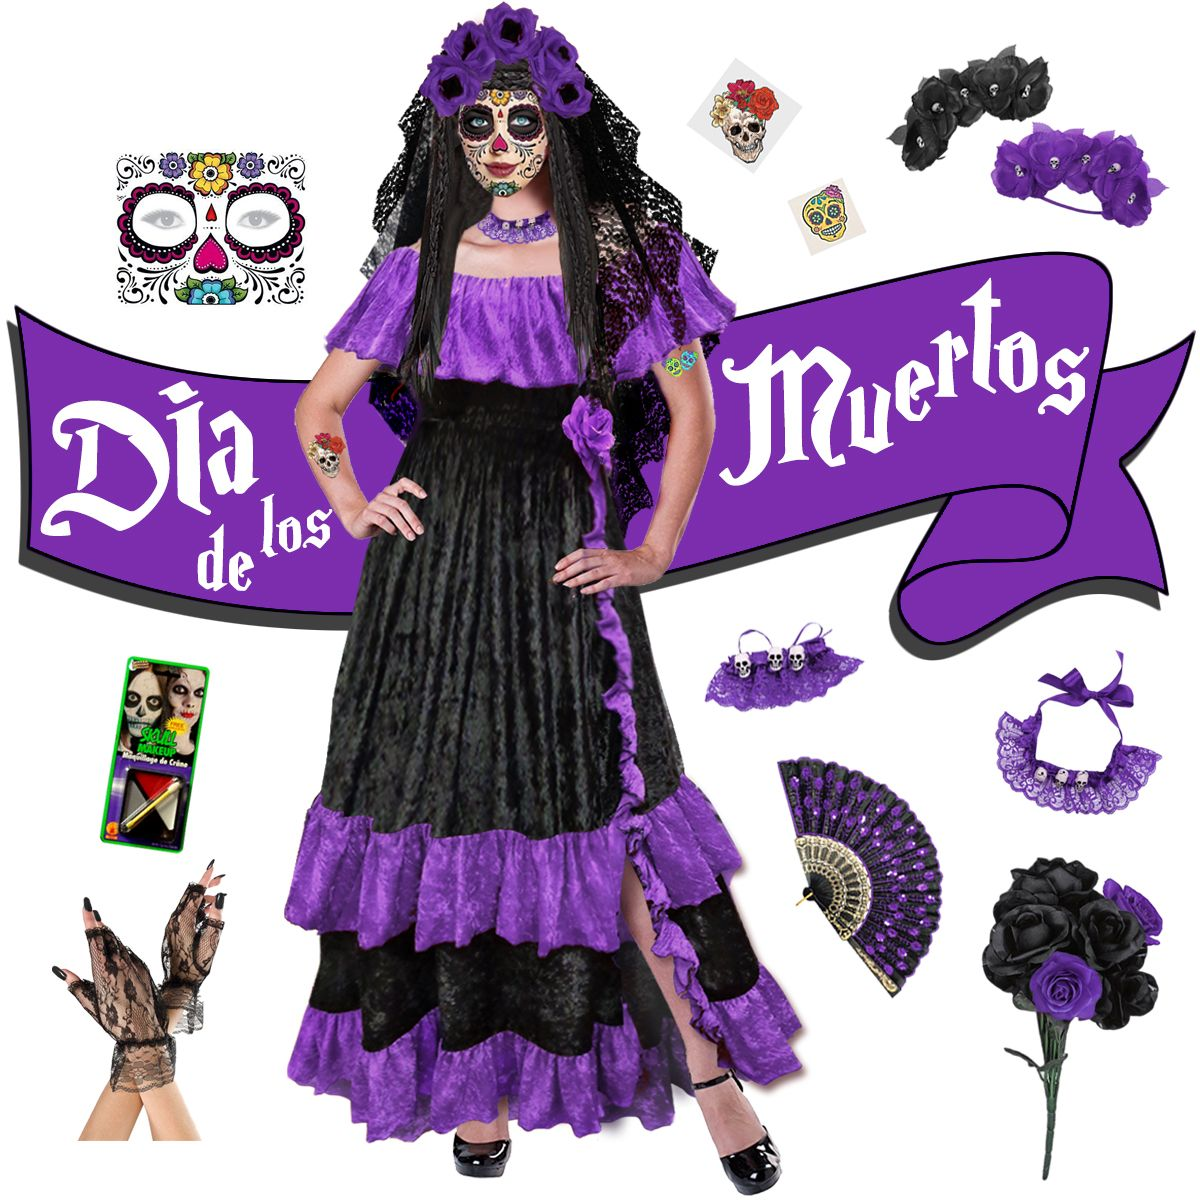 17+ Day of the dead dress information